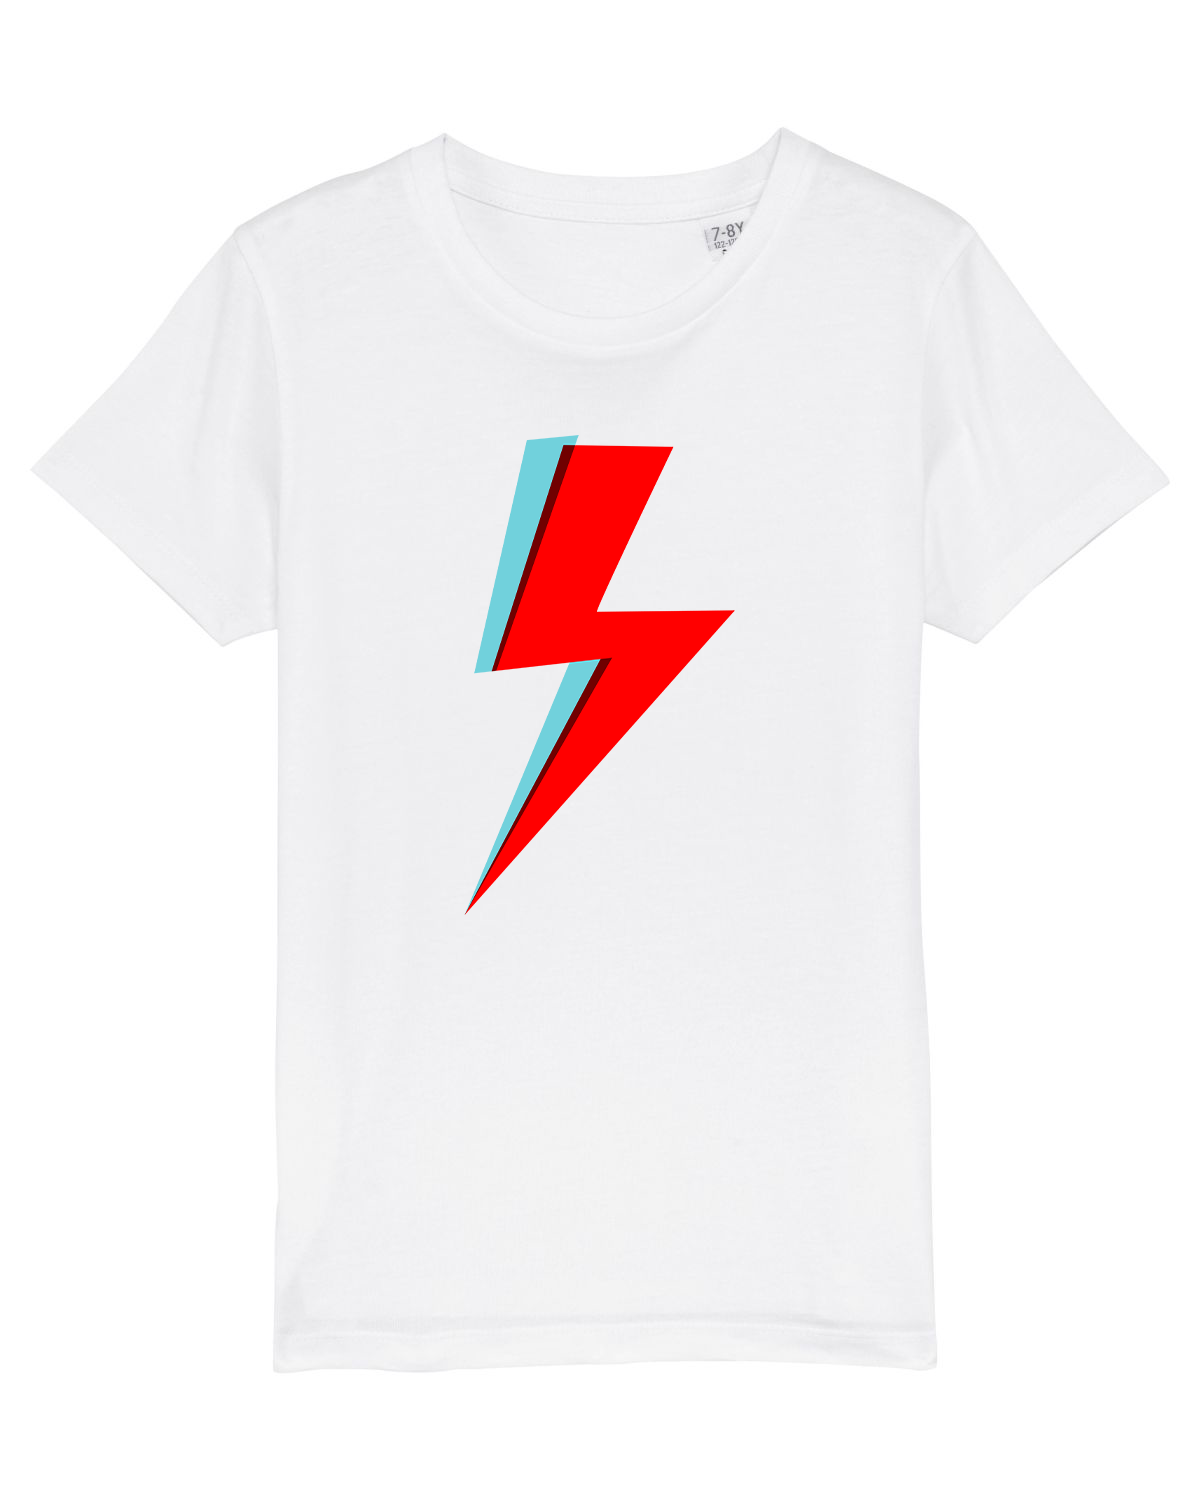 'Bowie Bolt' Organic Kids T-shirt